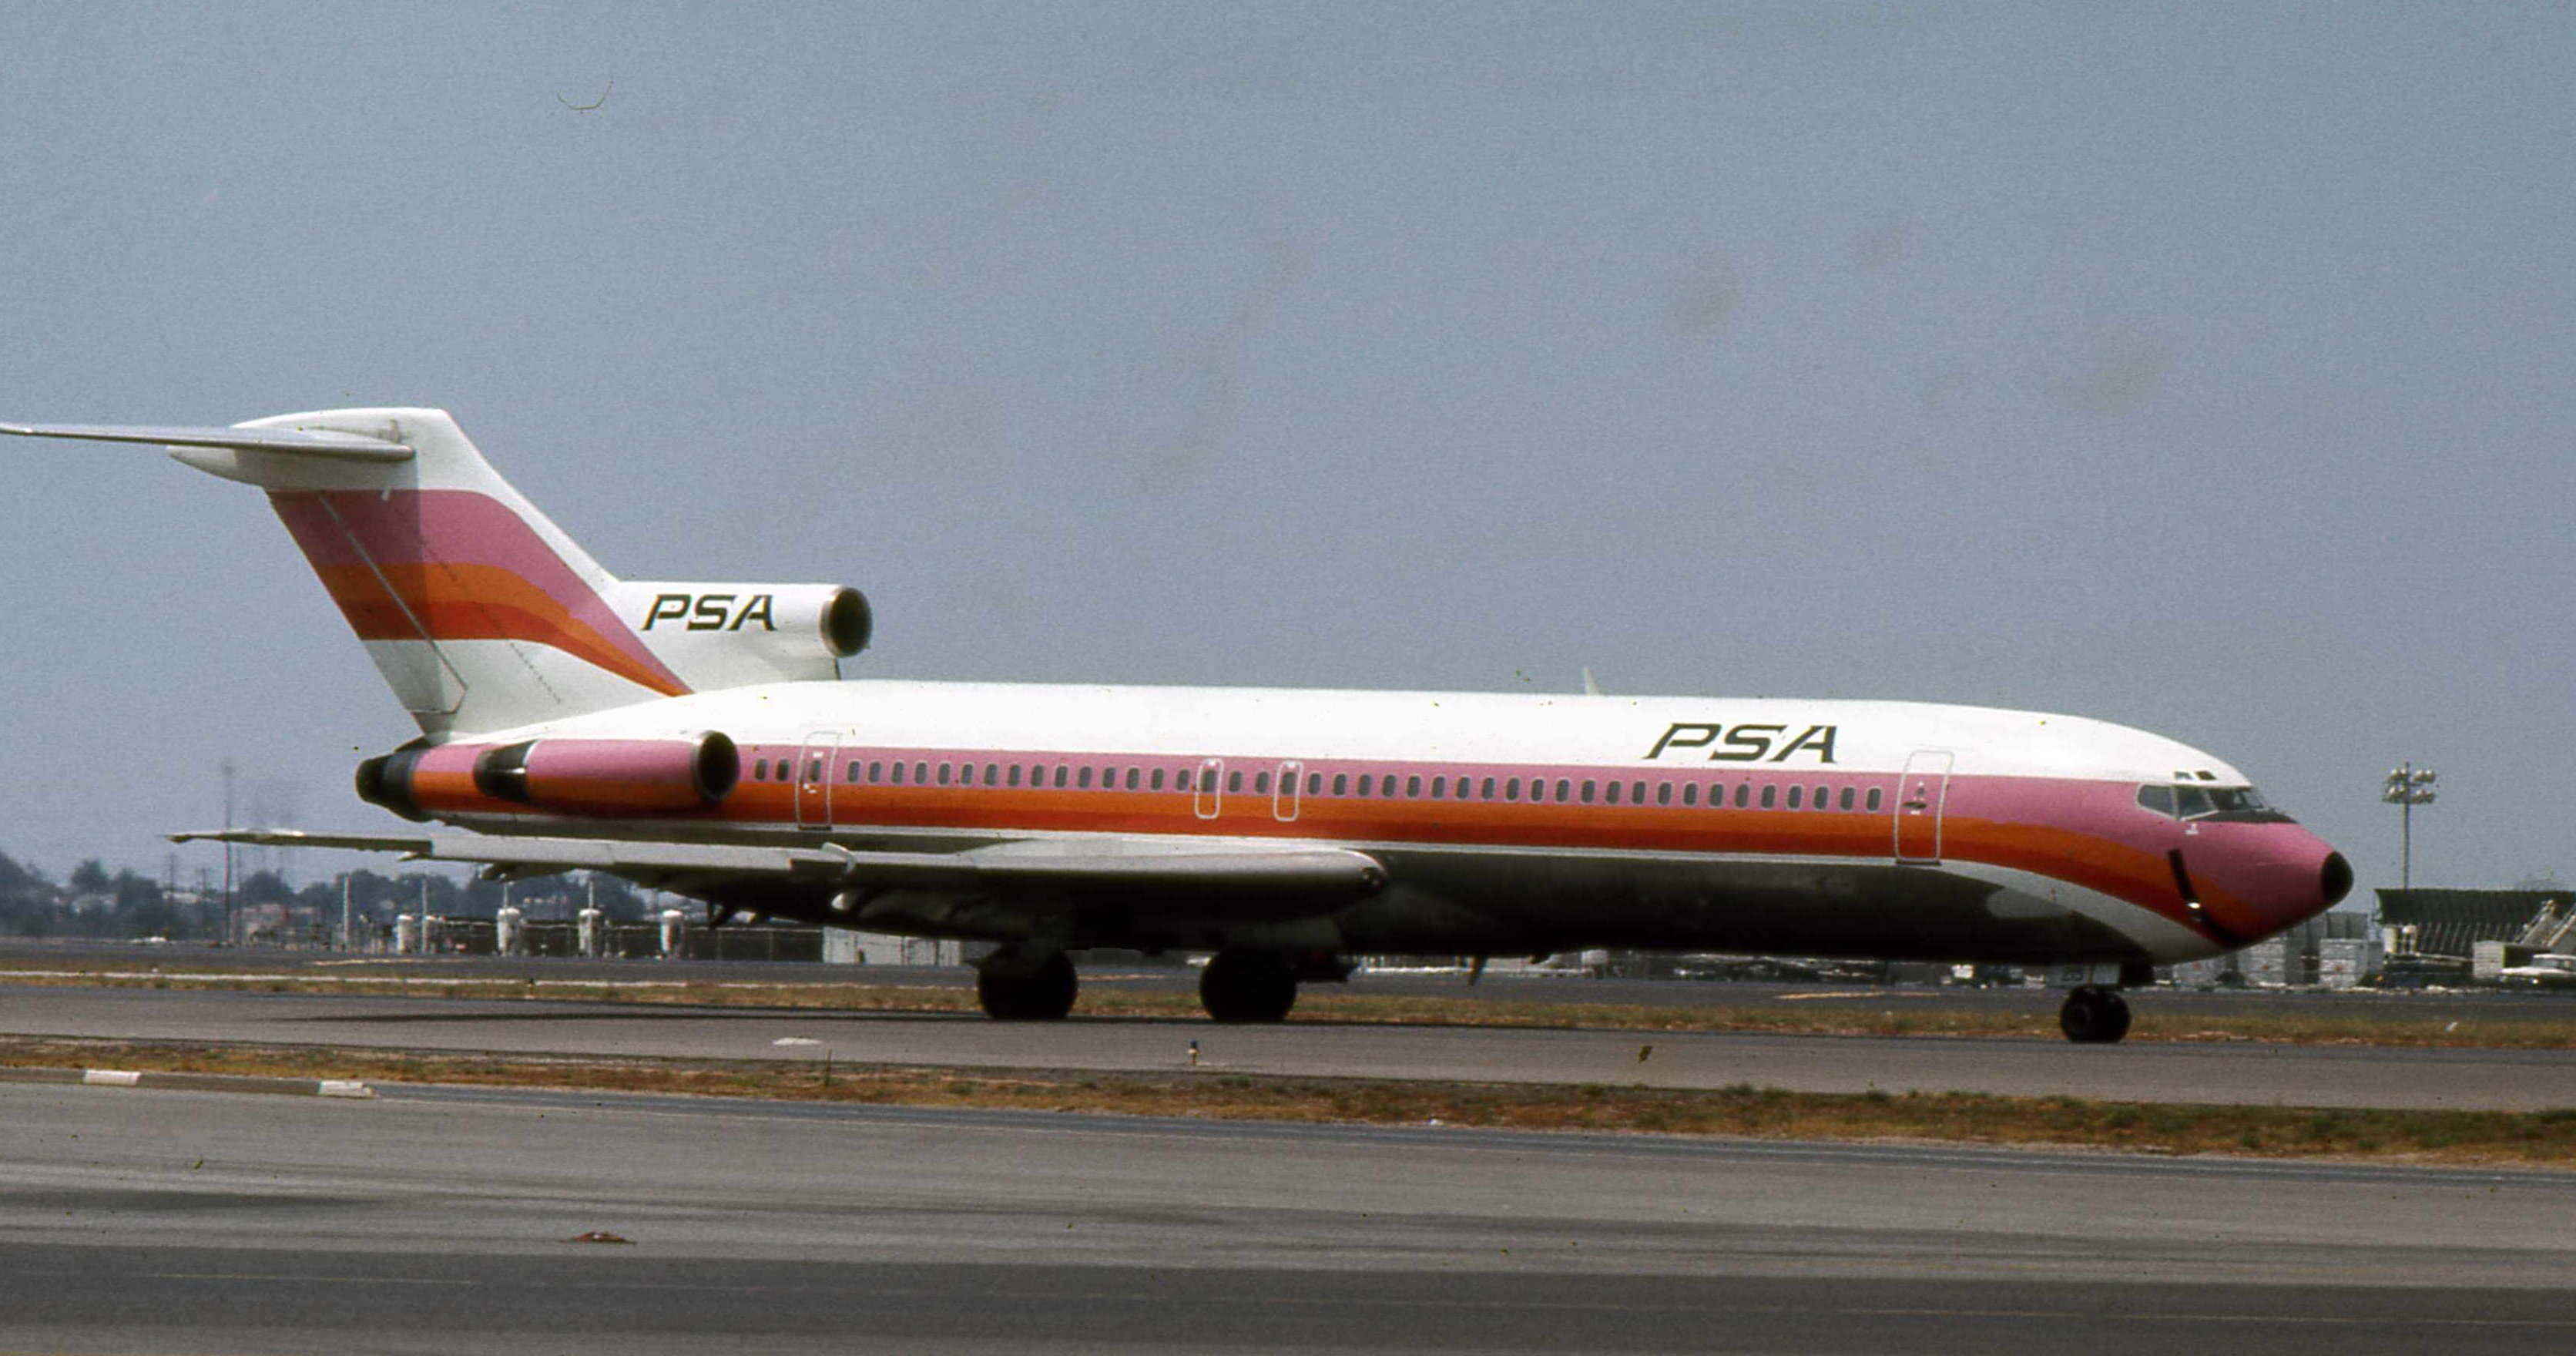 mid air crash of psa flight 182 Psa warned tower at 01:55 of crash crashed at 02:04 psa flight 182 background mid-air collision september 25th 1978 boeing 727-214 and cessna 172 pacific southwest airlines (psa) san diego, california clear skys reported no problems to aircraft, navigation, or communications.